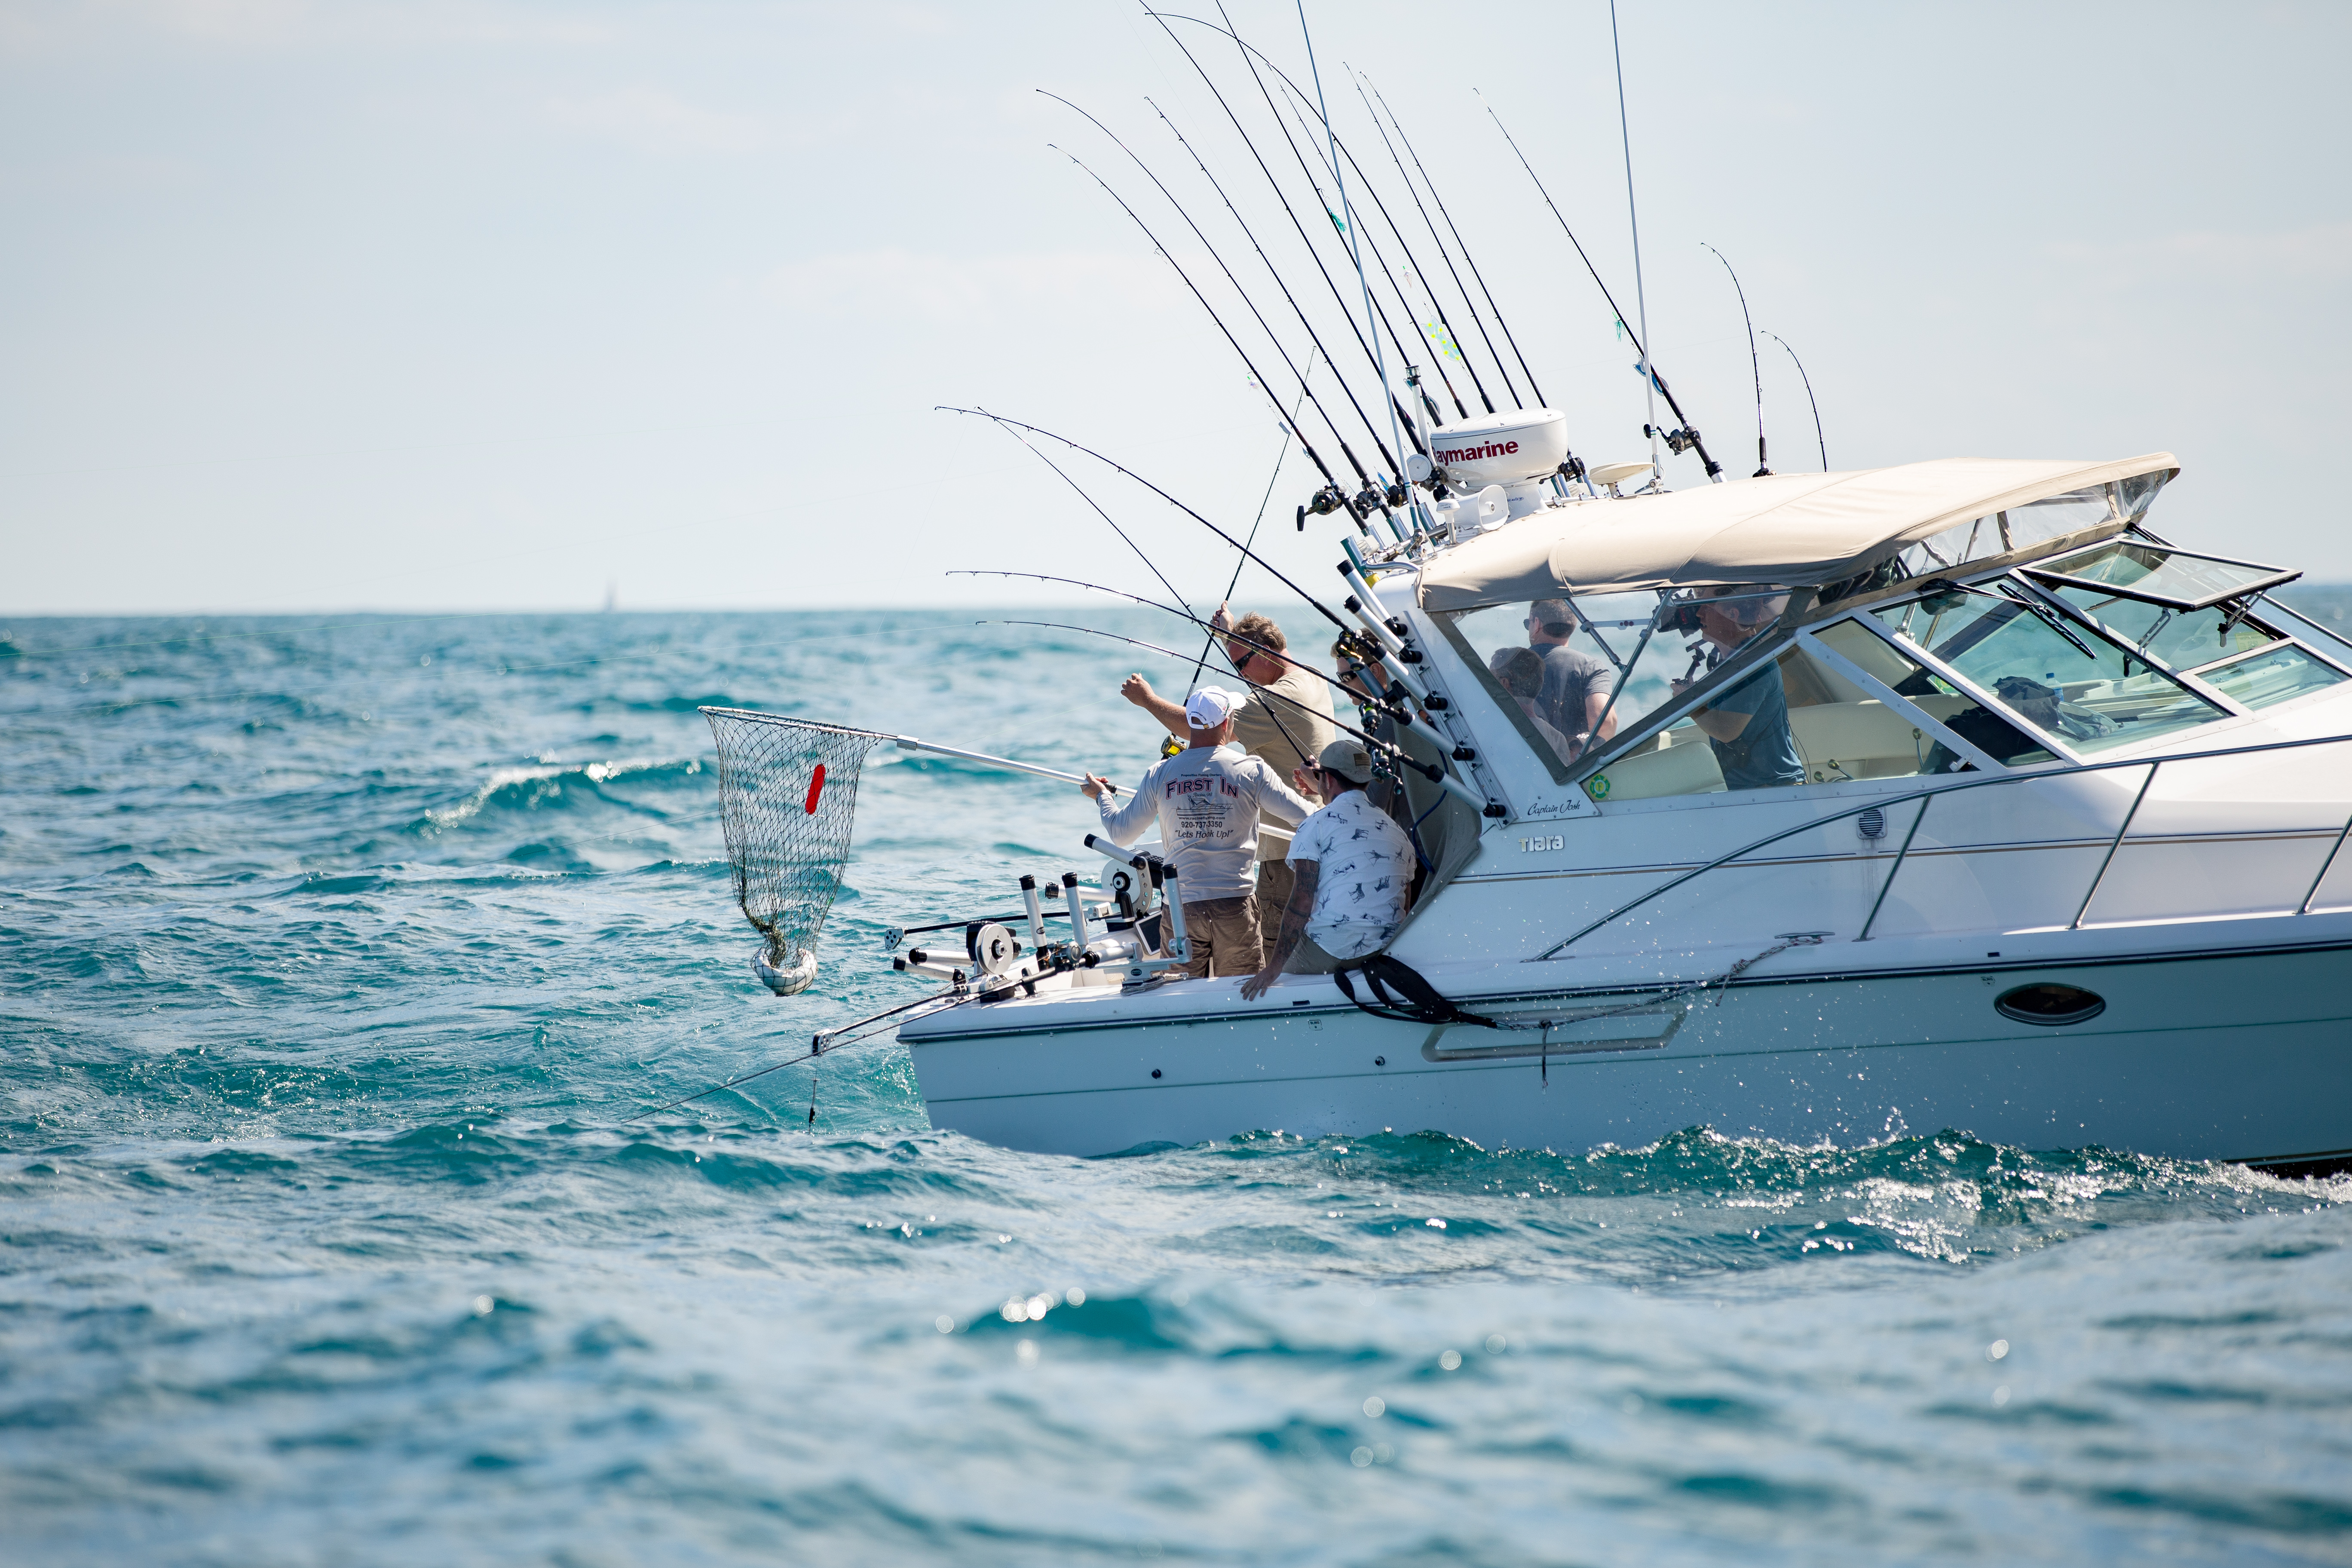 Racine wi official tourism site hotels events things to do for Racine charter fishing